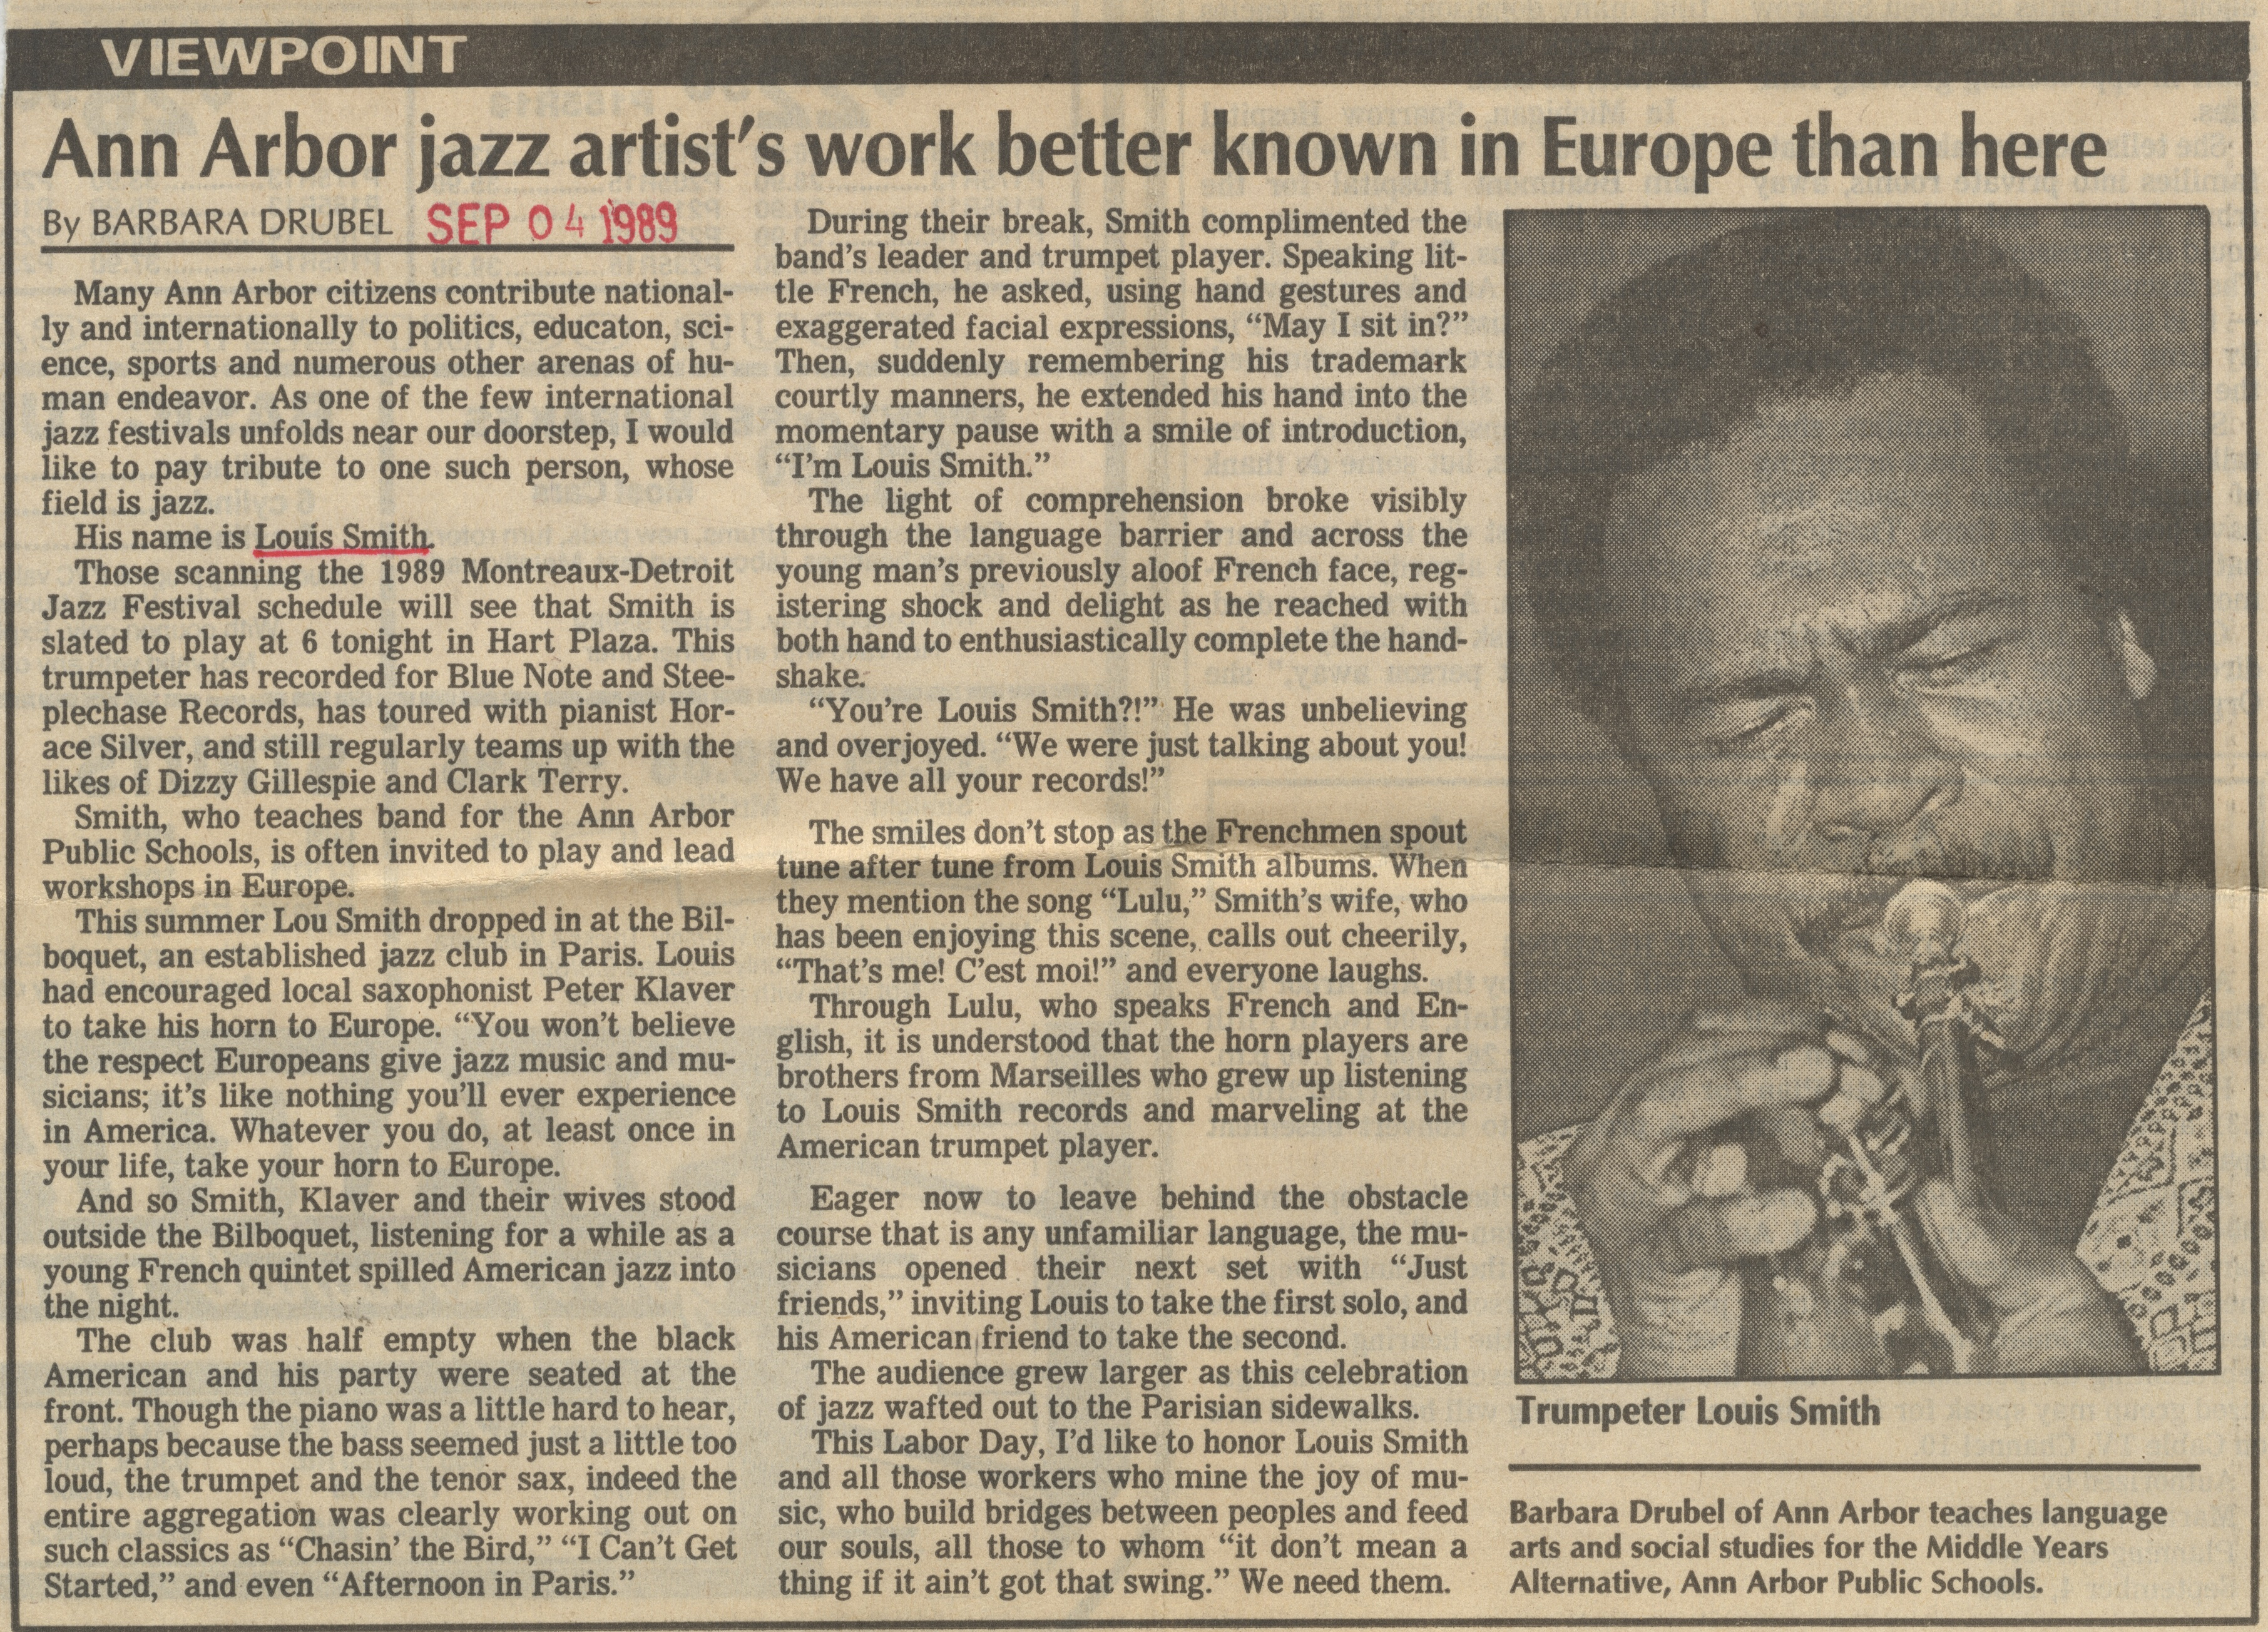 Ann Arbor Jazz Artist's Work Better Known In Europe Than Here image